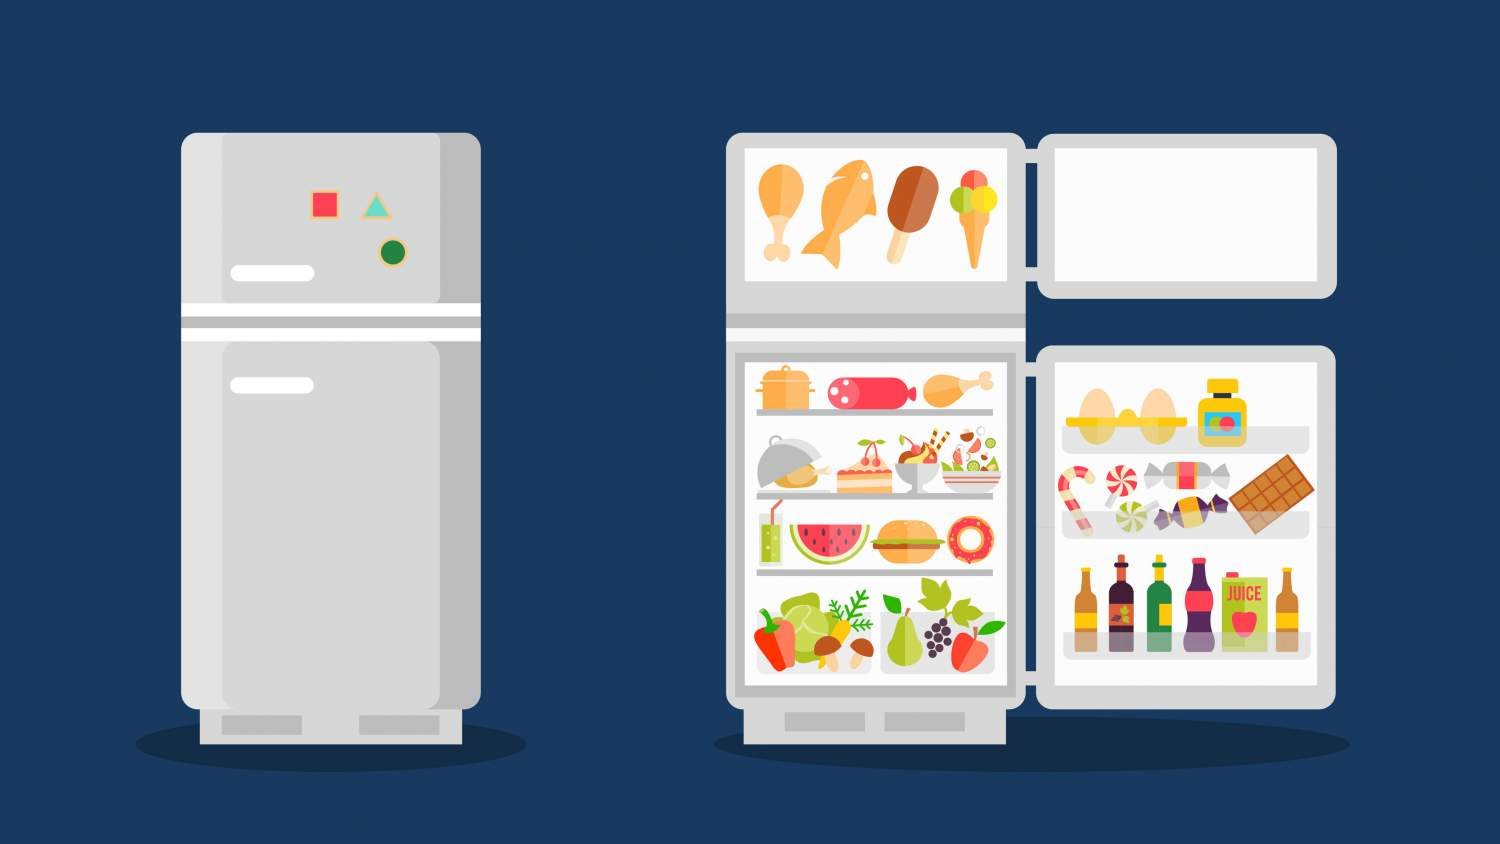 Illustration of refrigerator with food